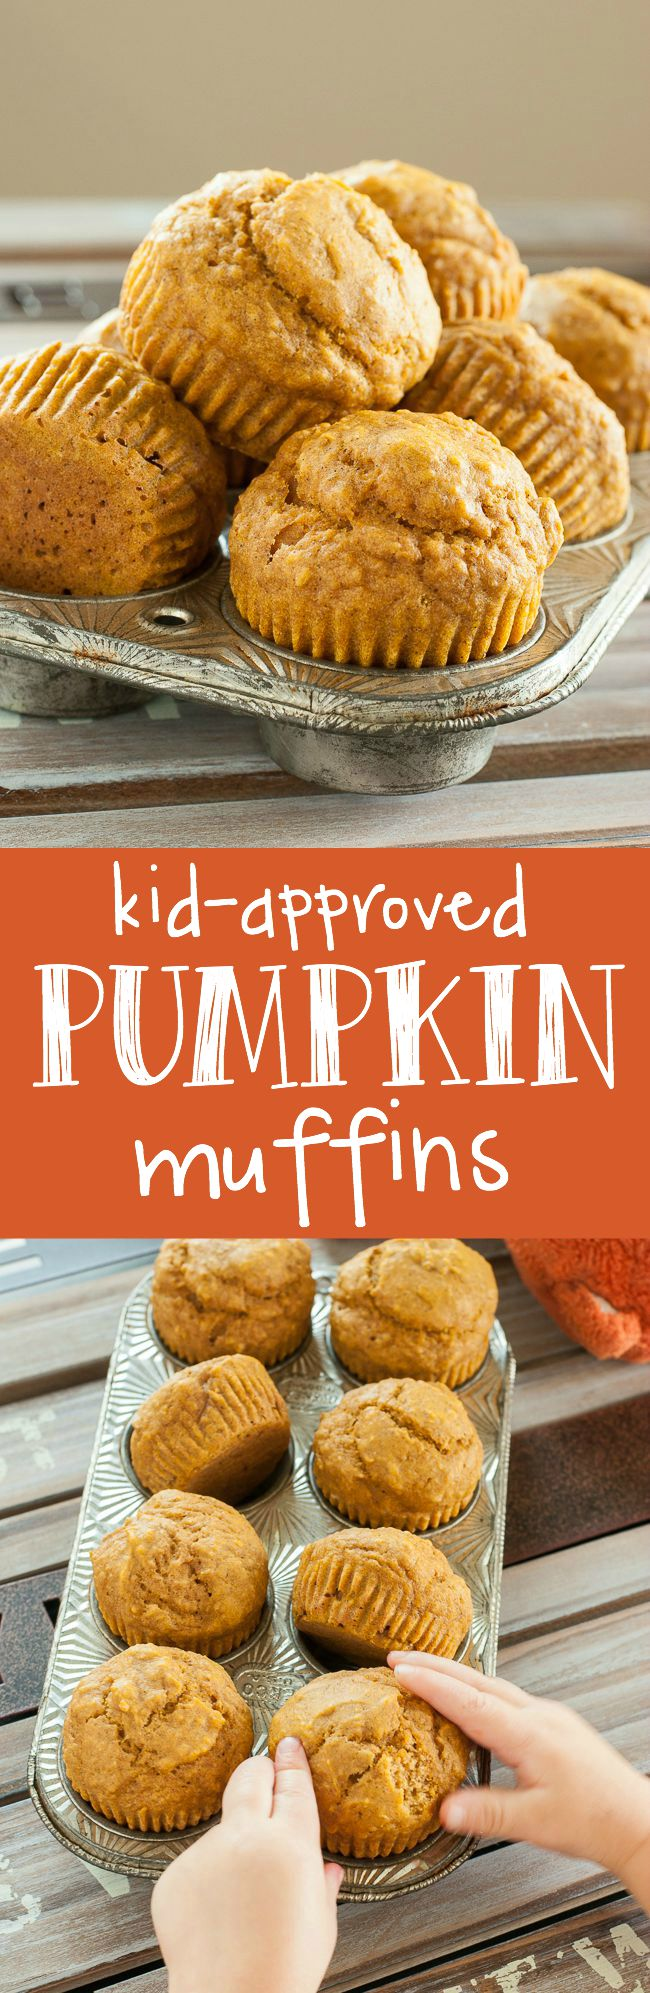 Kid-Friendly Pumkpin Muffins :: we LOVE these naturally sweet muffins!